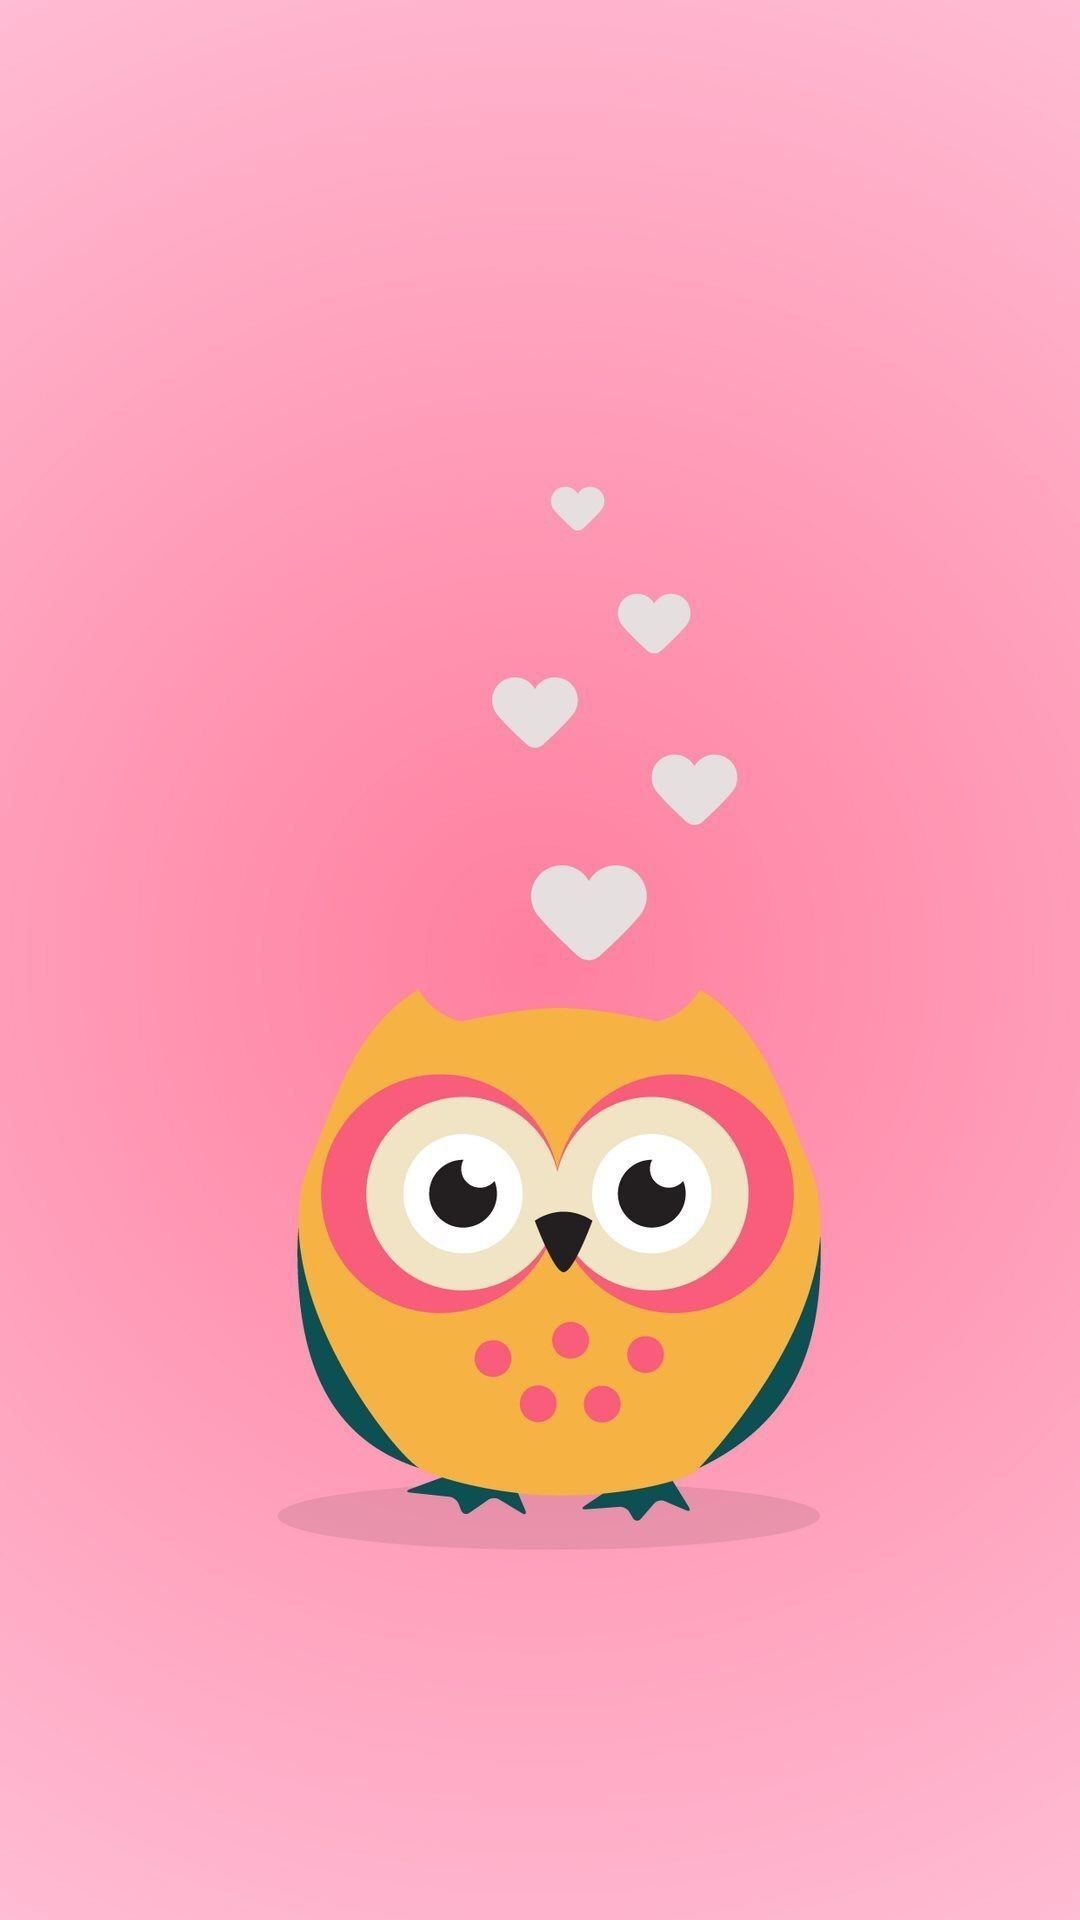 1080x1920 71+ Cute Owl Wallpapers on WallpaperPlay